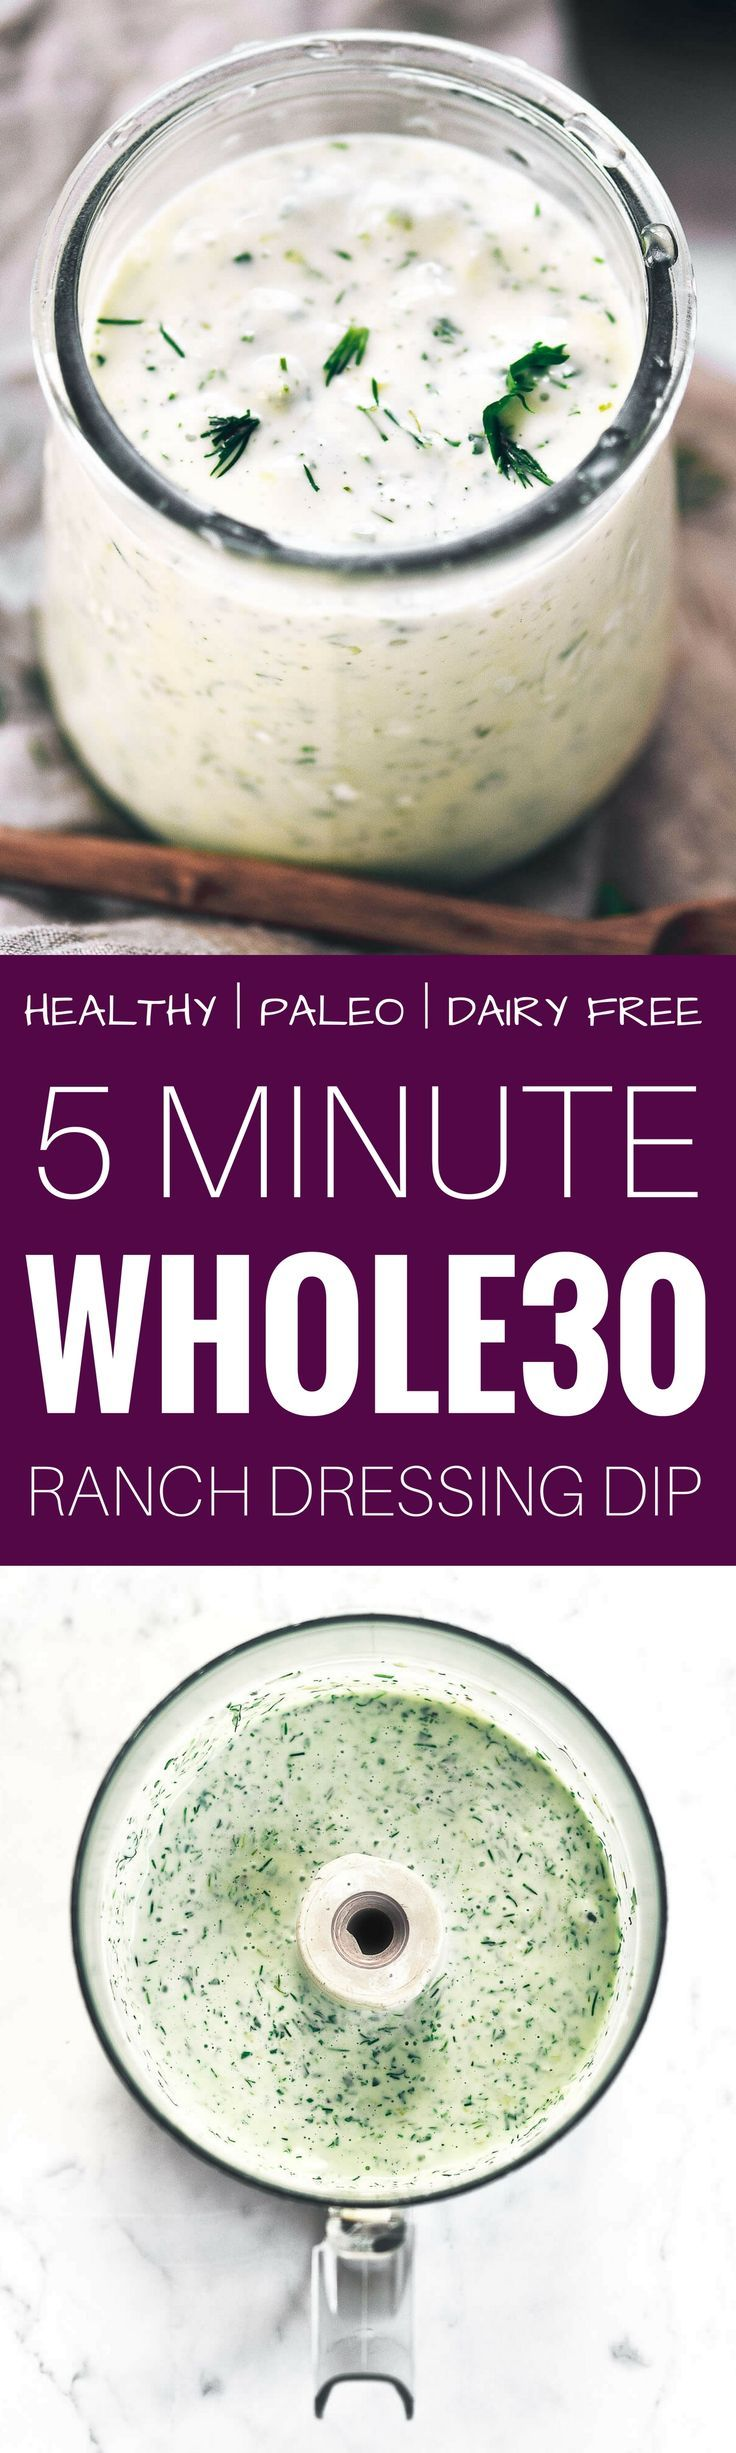 Whole30 Ranch Dressing ** use tofu or cashew instead of mayo**